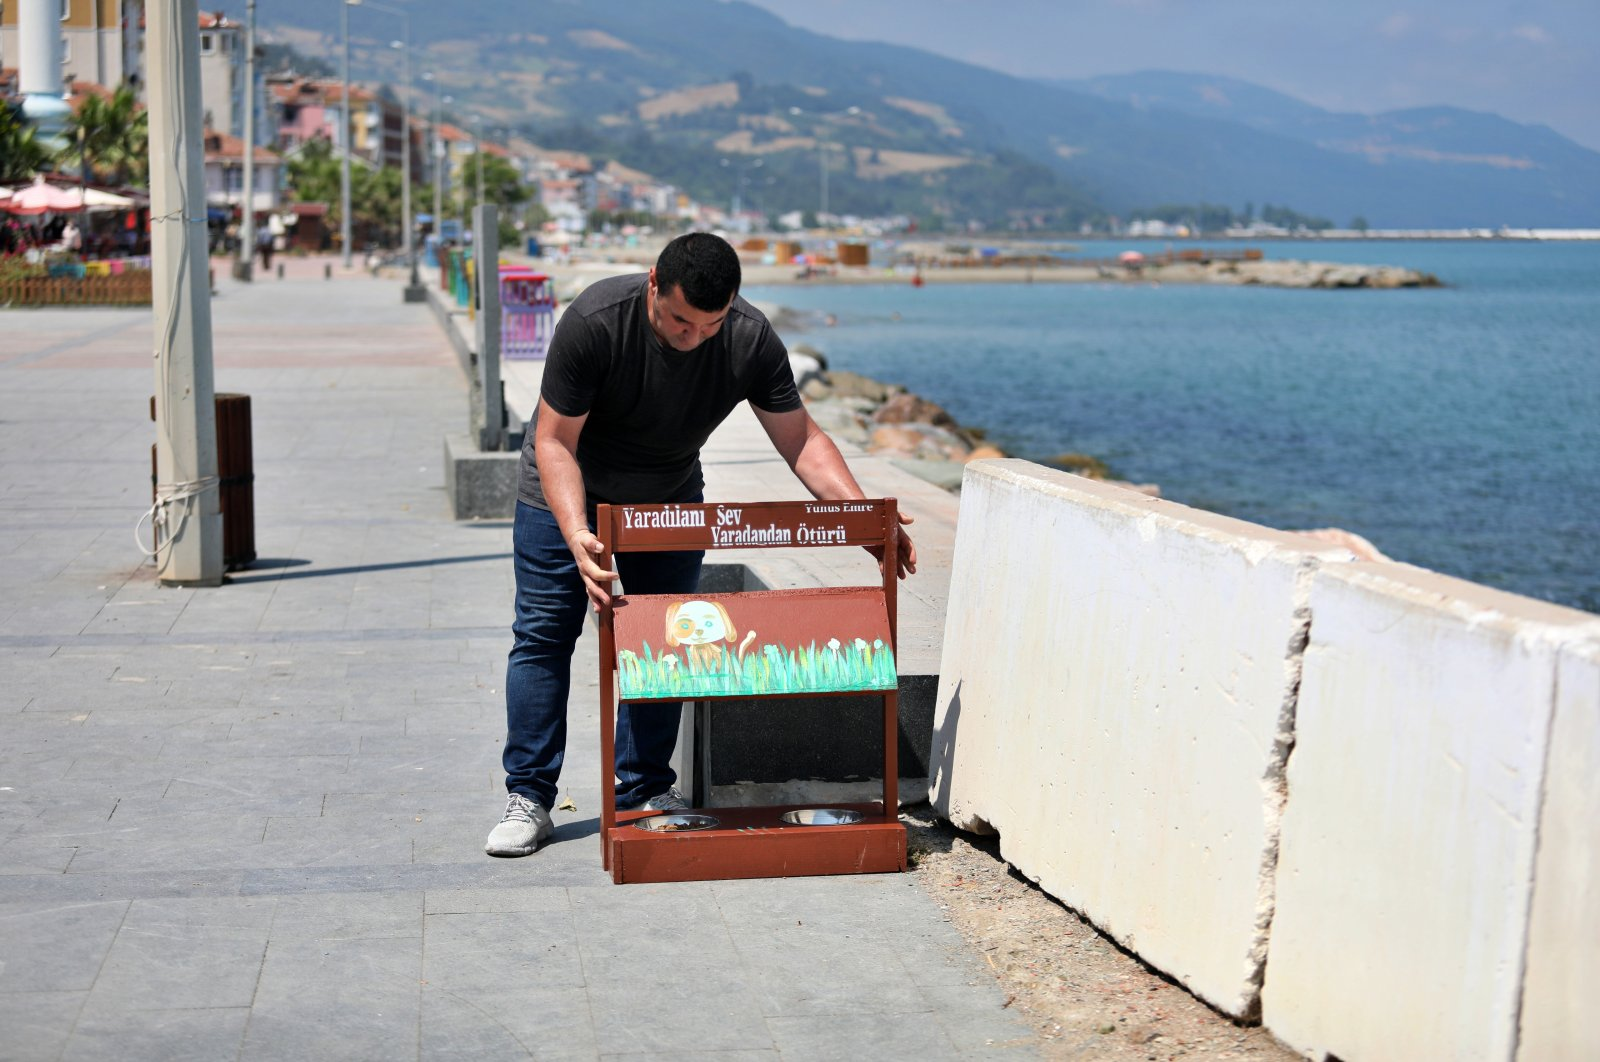 A worker places a feeder made of blackboards at the Yakakent shore, in Samsun, northern Turkey, July 18, 2021. (AA PHOTO)